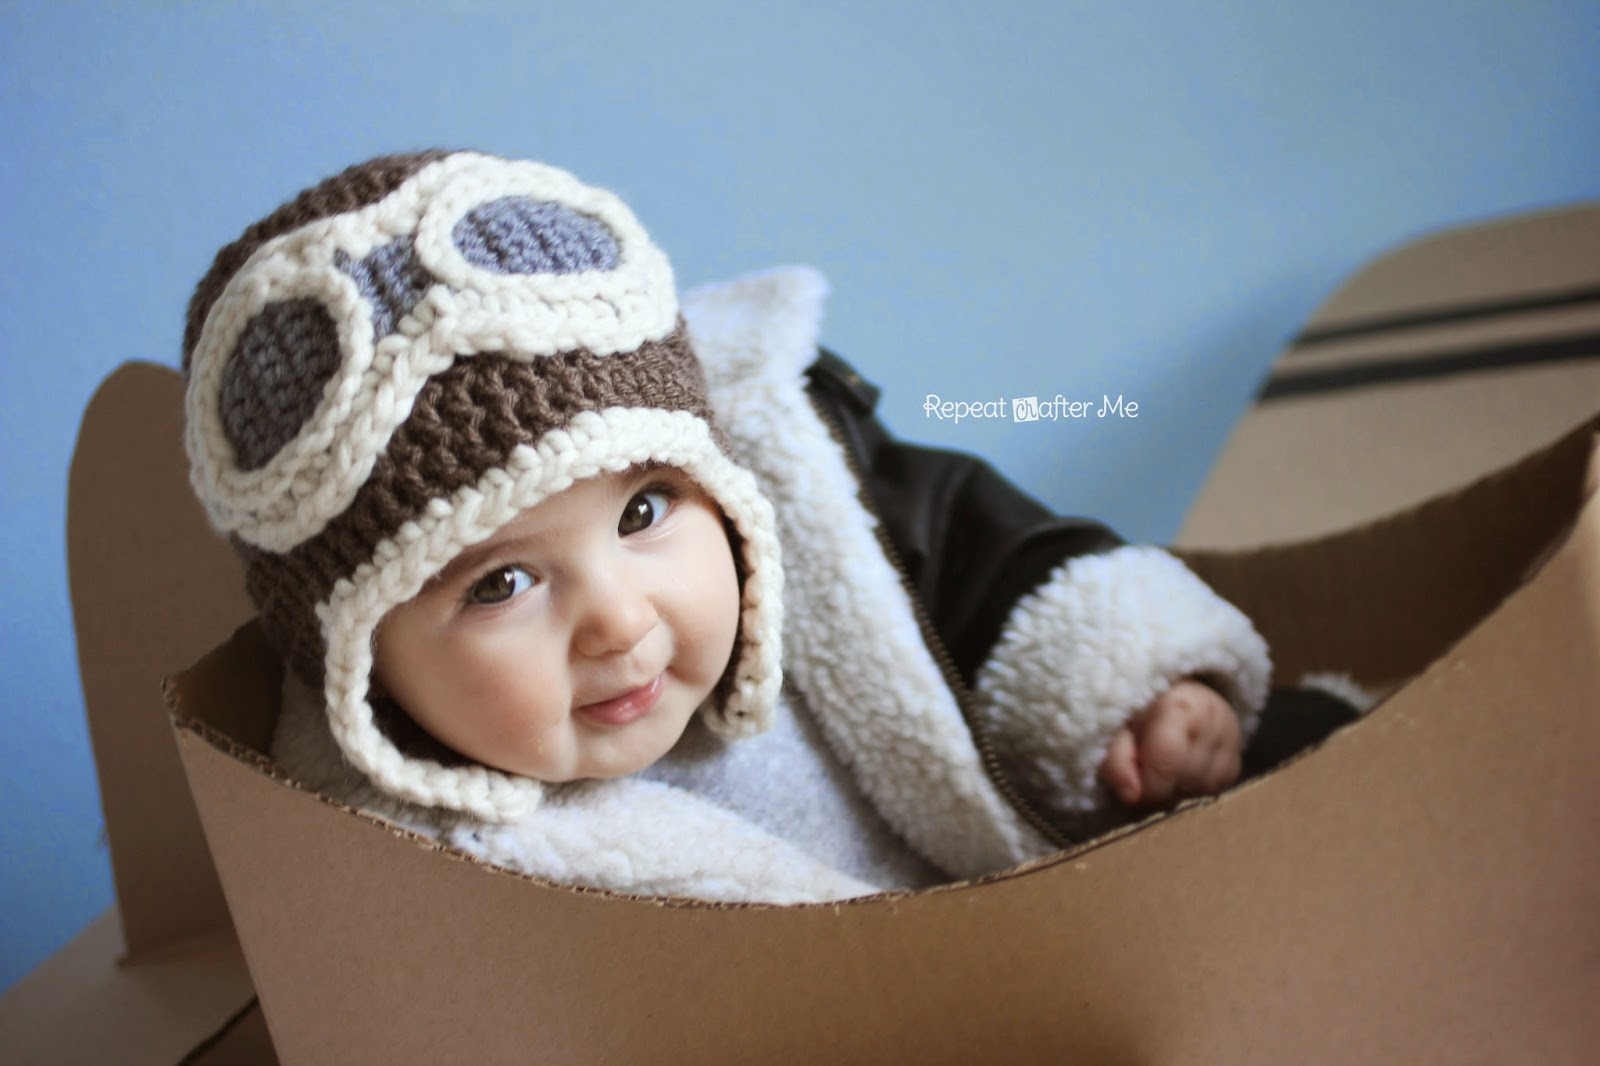 Awesome 41 Adorable Crochet Baby Hats & Patterns to Make Free Hat Patterns Of Amazing 43 Models Free Hat Patterns